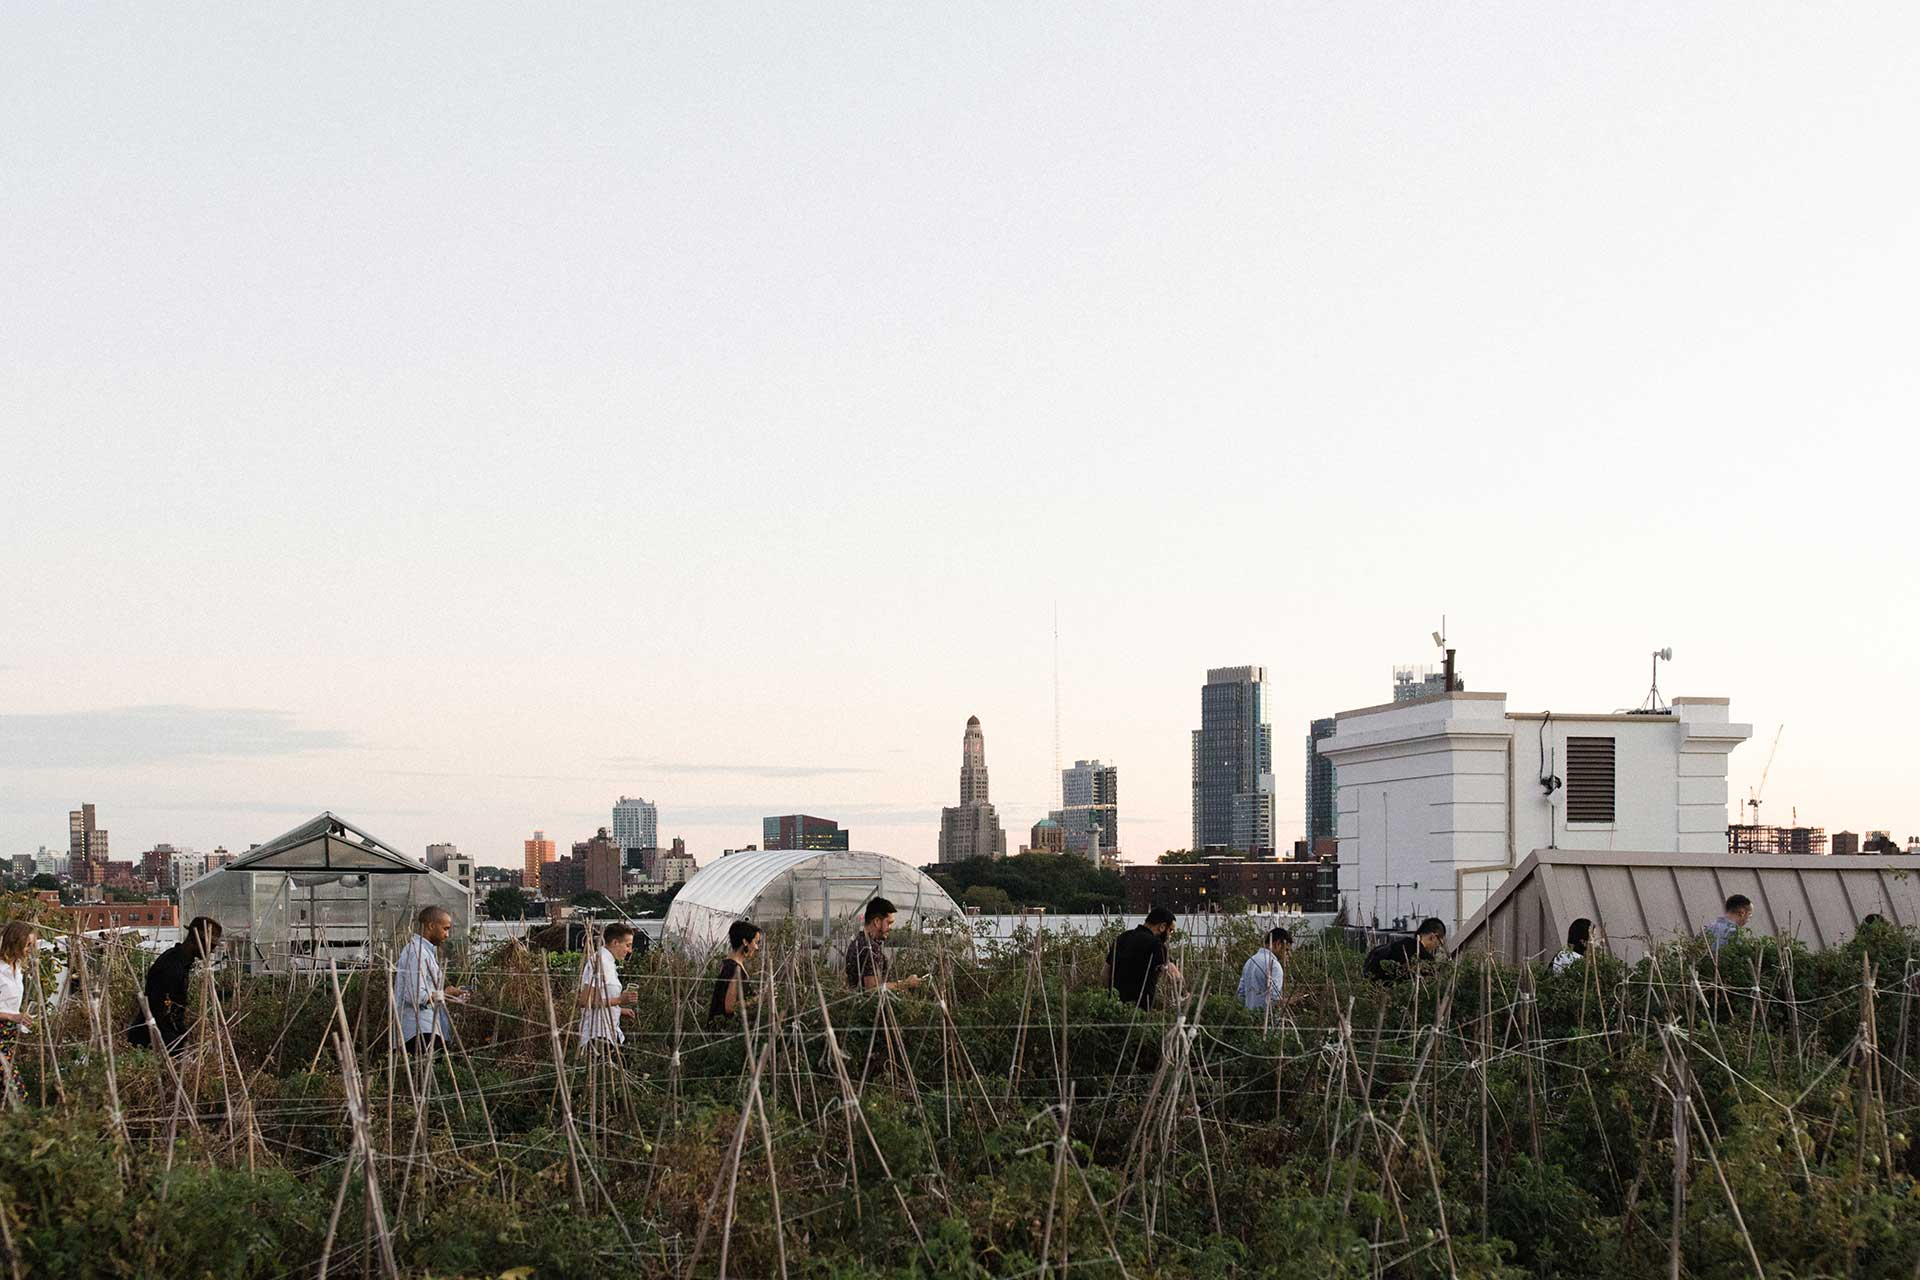 A group of people walk through rows of plants in a rooftop garden.